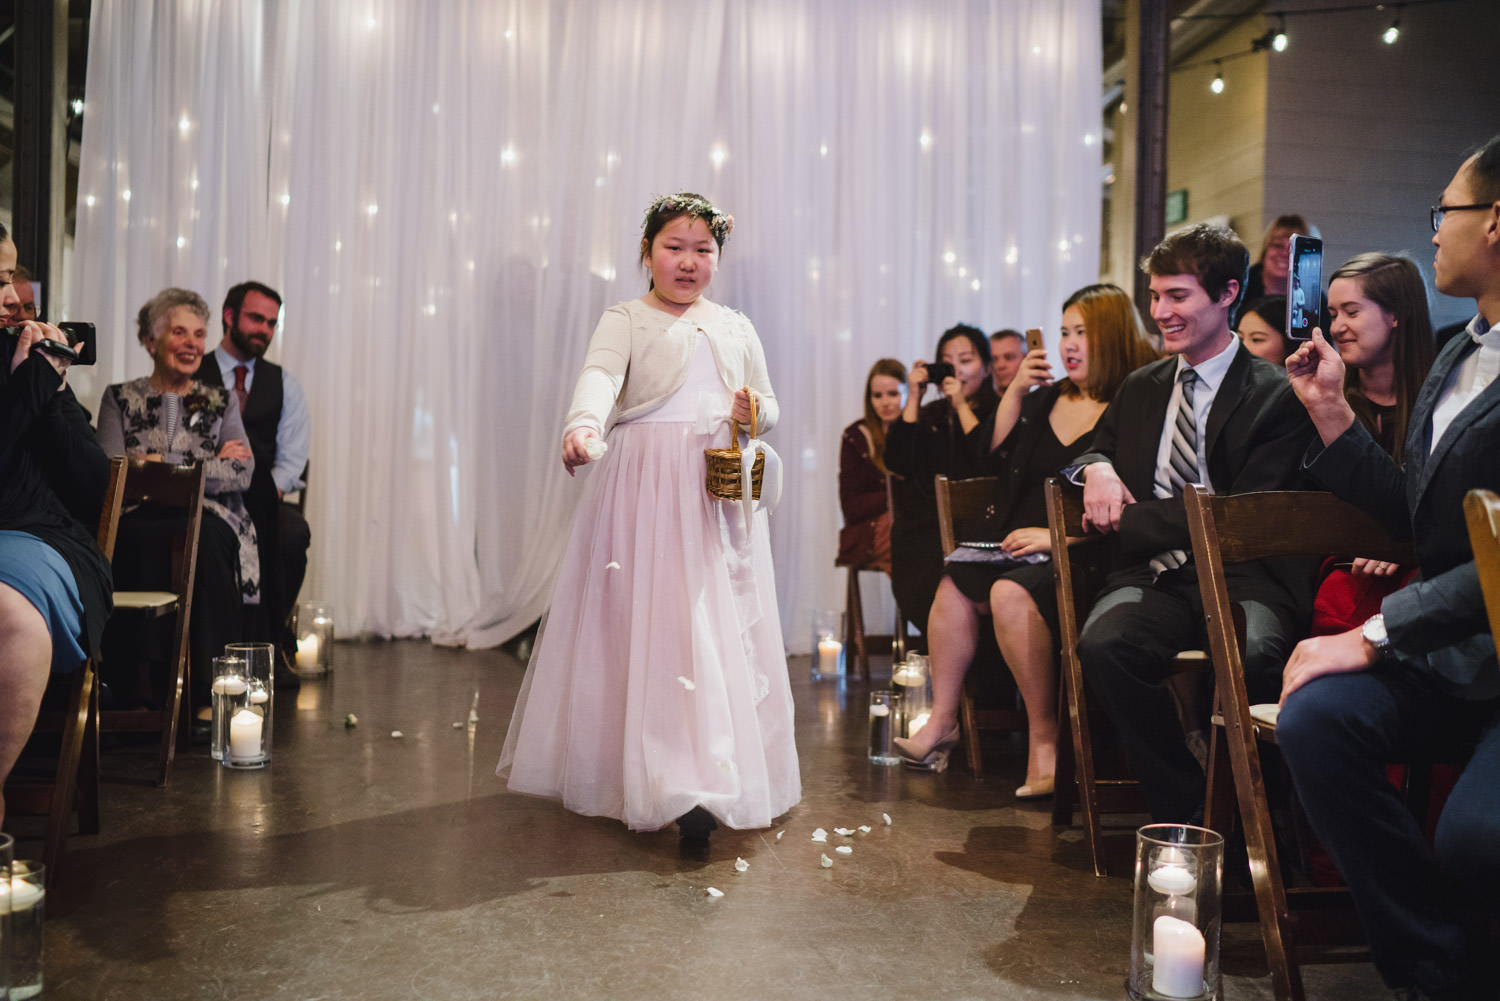 Pierpont Place wedding flower girl at ceremony photo